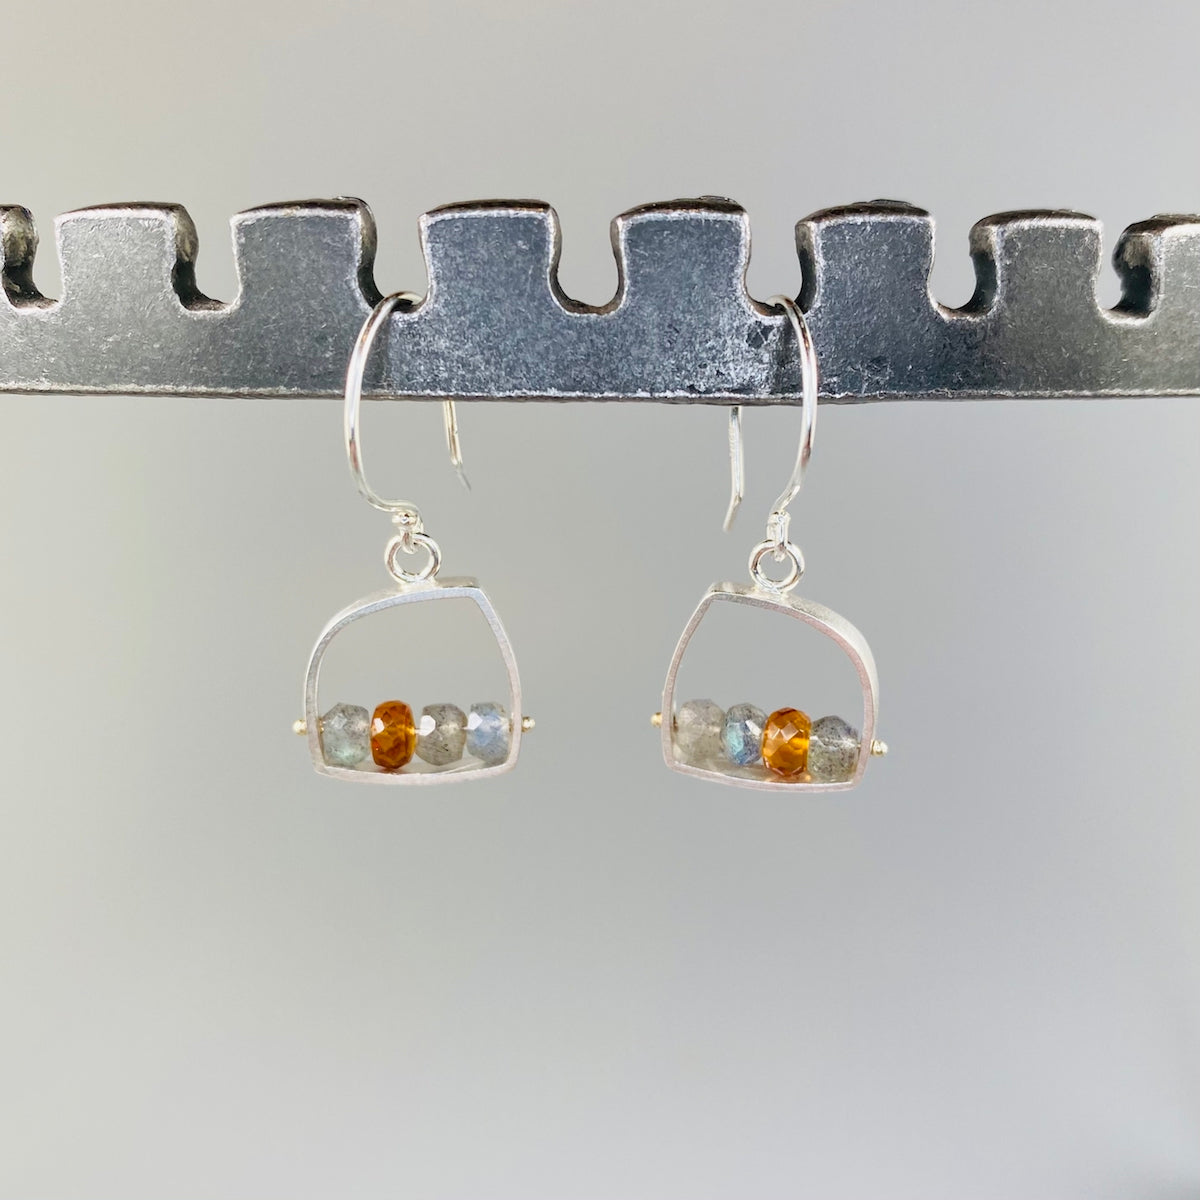 Organic Earrings in Labradorite & Honey - Heart of the Home PA